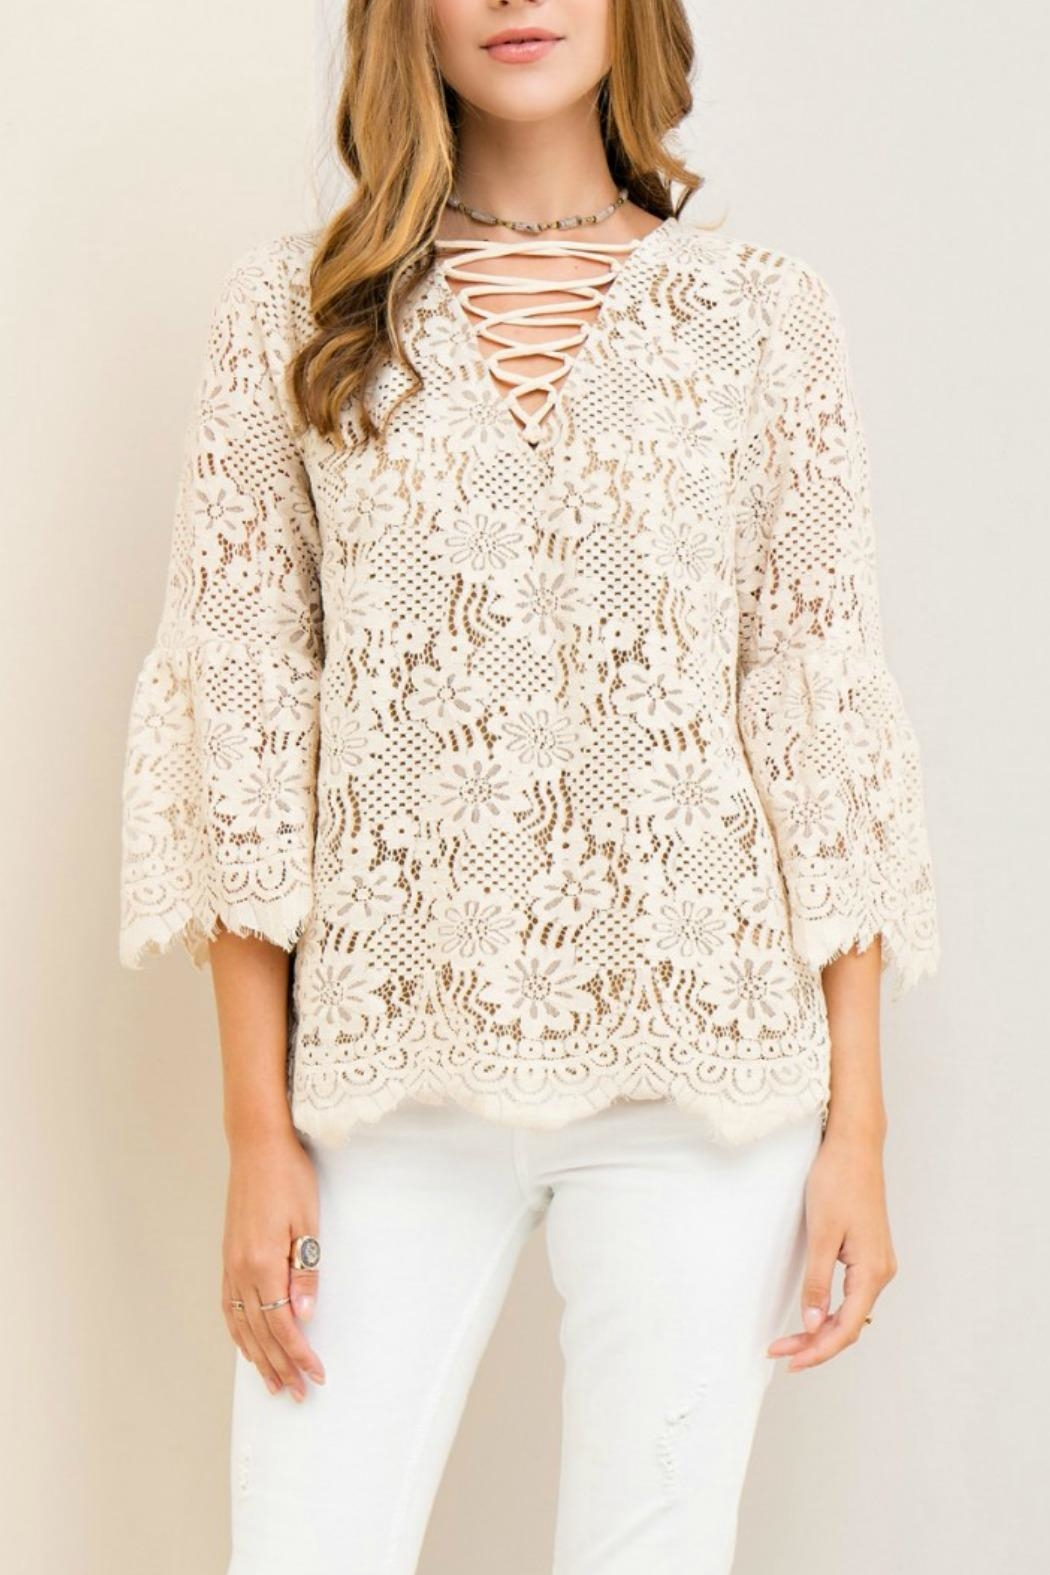 Entro Solid Lace Top - Main Image